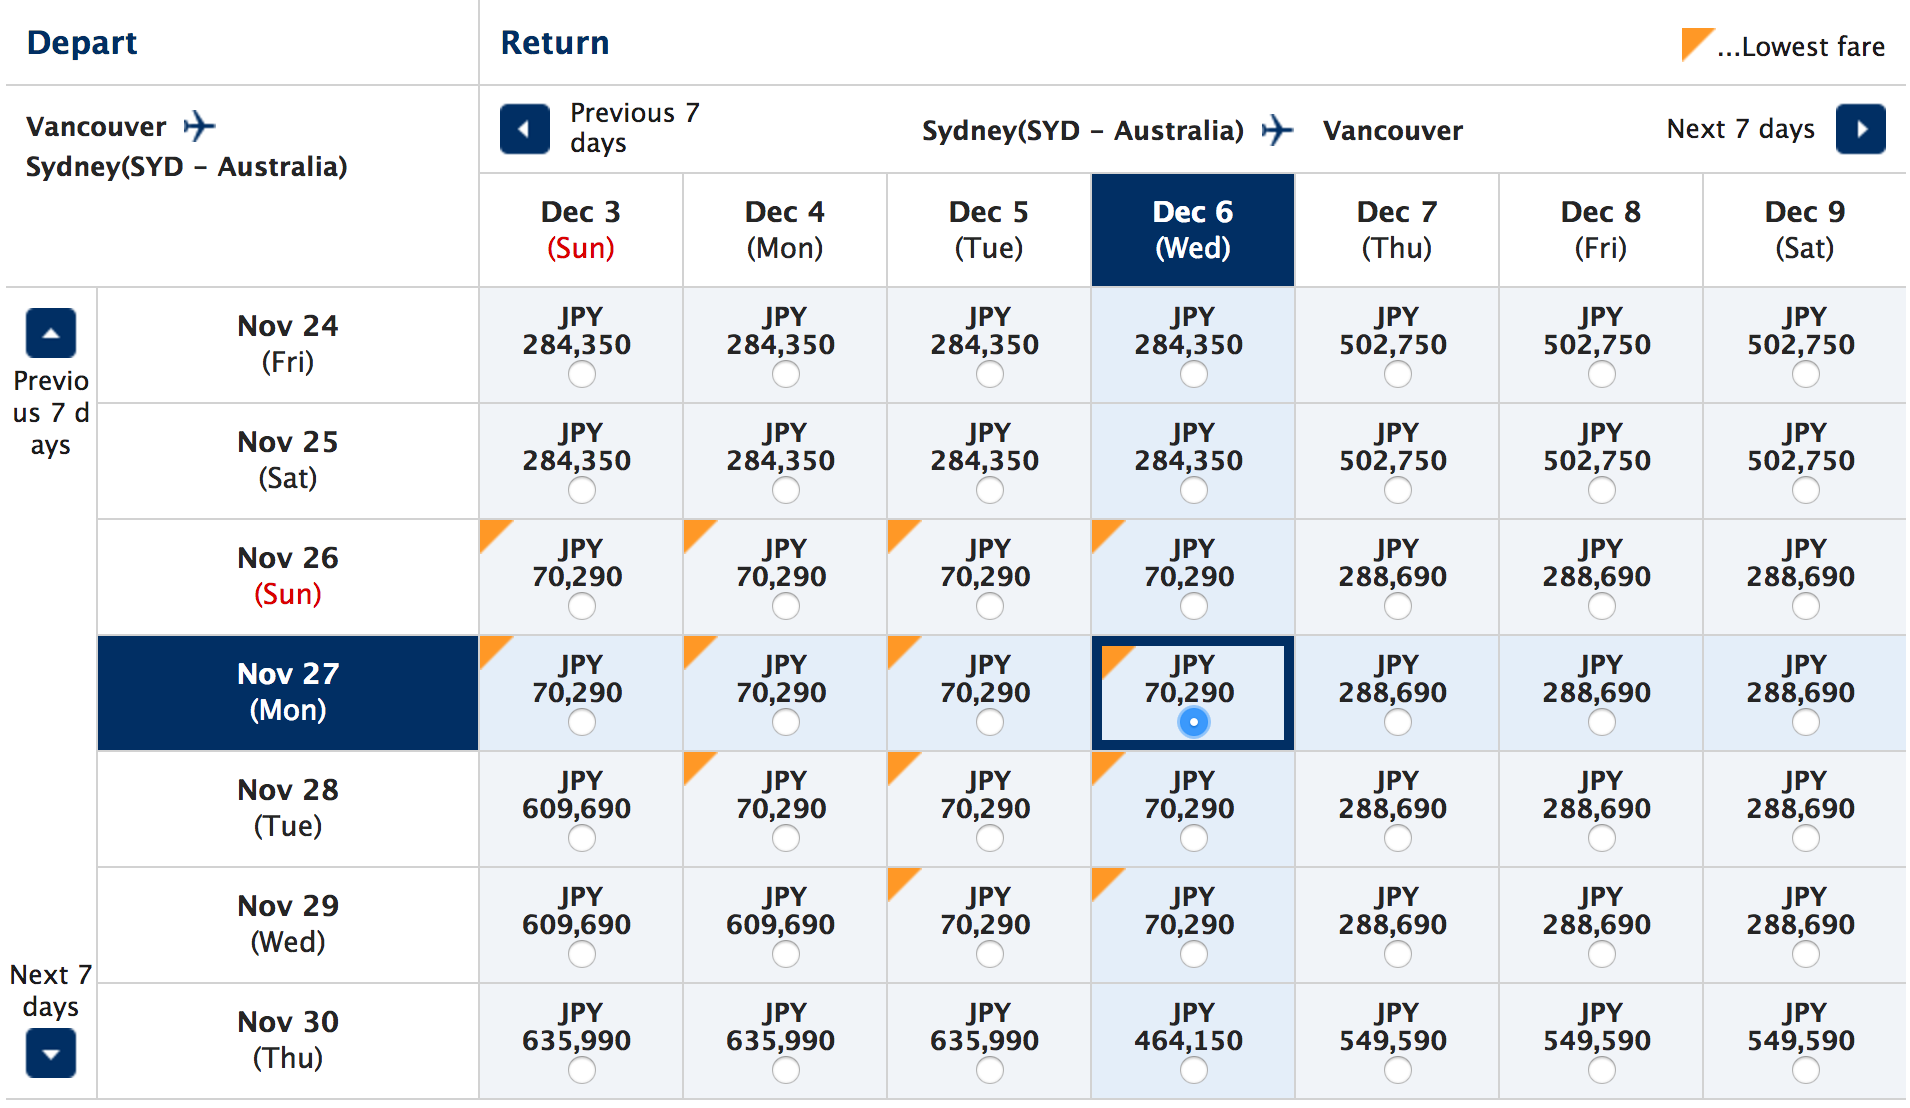 ANA business class tickets were on sale for tons of dates with stays in Sydney of at least 7 days.